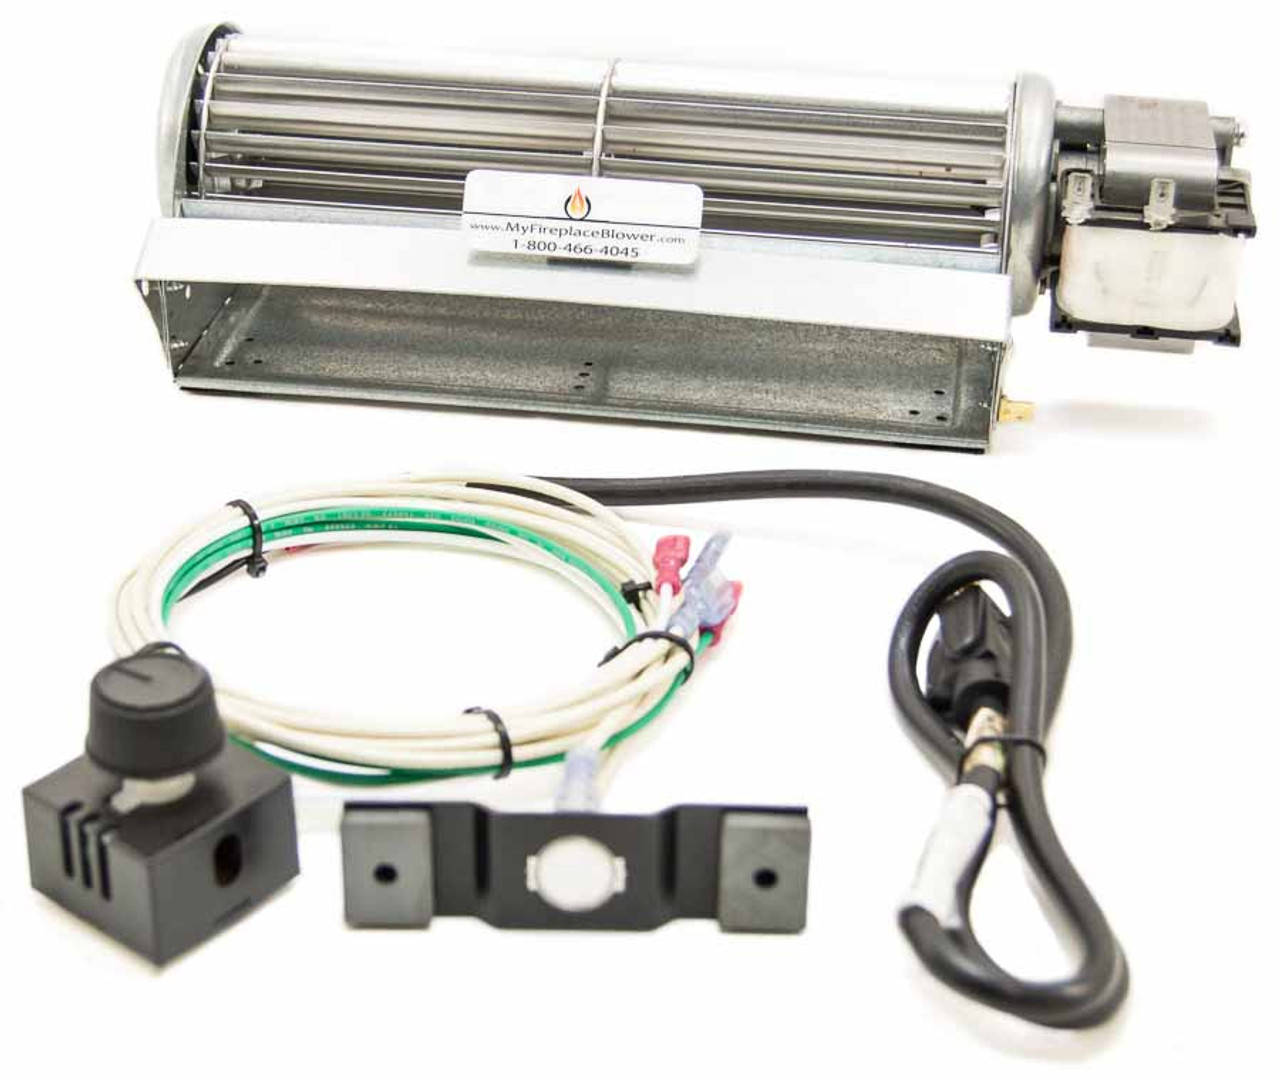 medium resolution of blot240 fireplace blower fan kit for monessen fireplaces